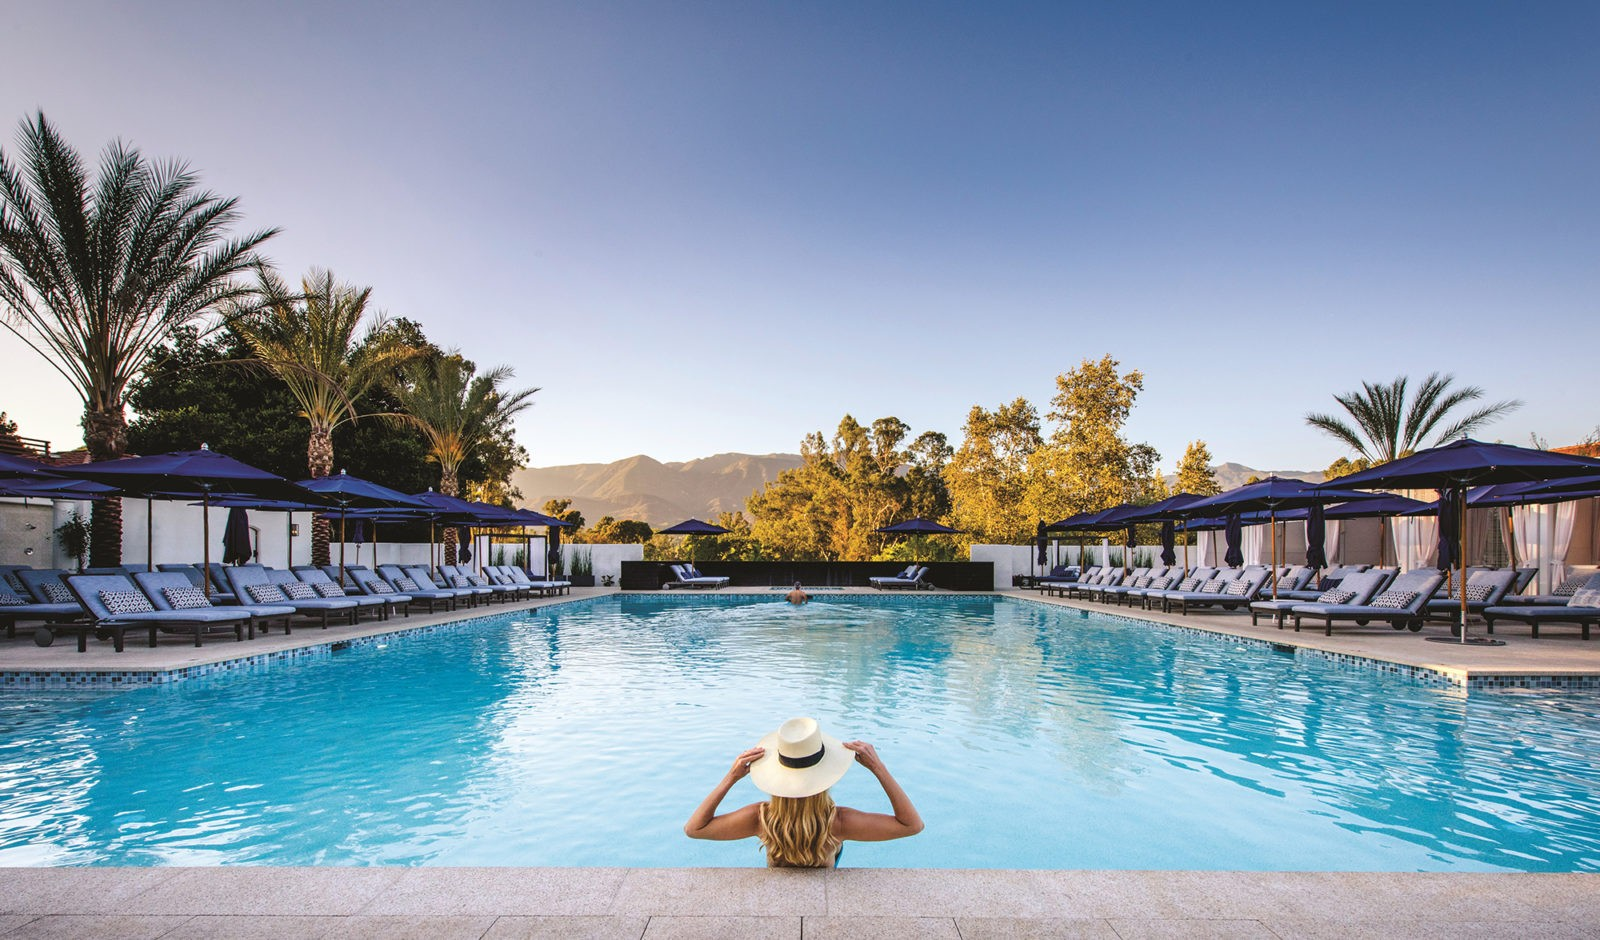 Best Weekend Getaways near Los Angeles - Ojai Valley Inn